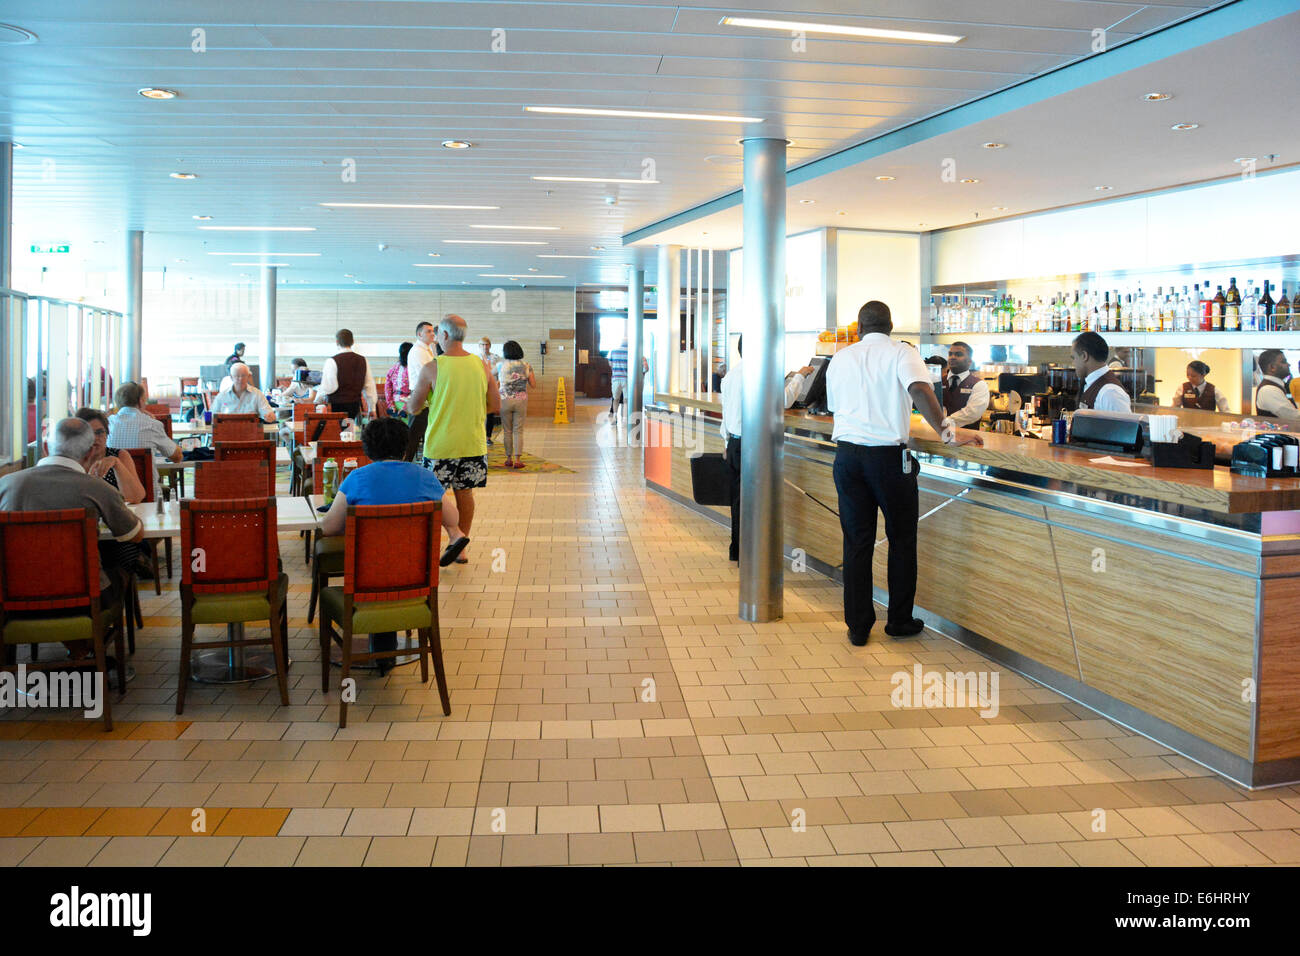 Cafeteria deck with breakfast buffet tables with bar counter open aboard a large Mediterranean cruise ship - Stock Image